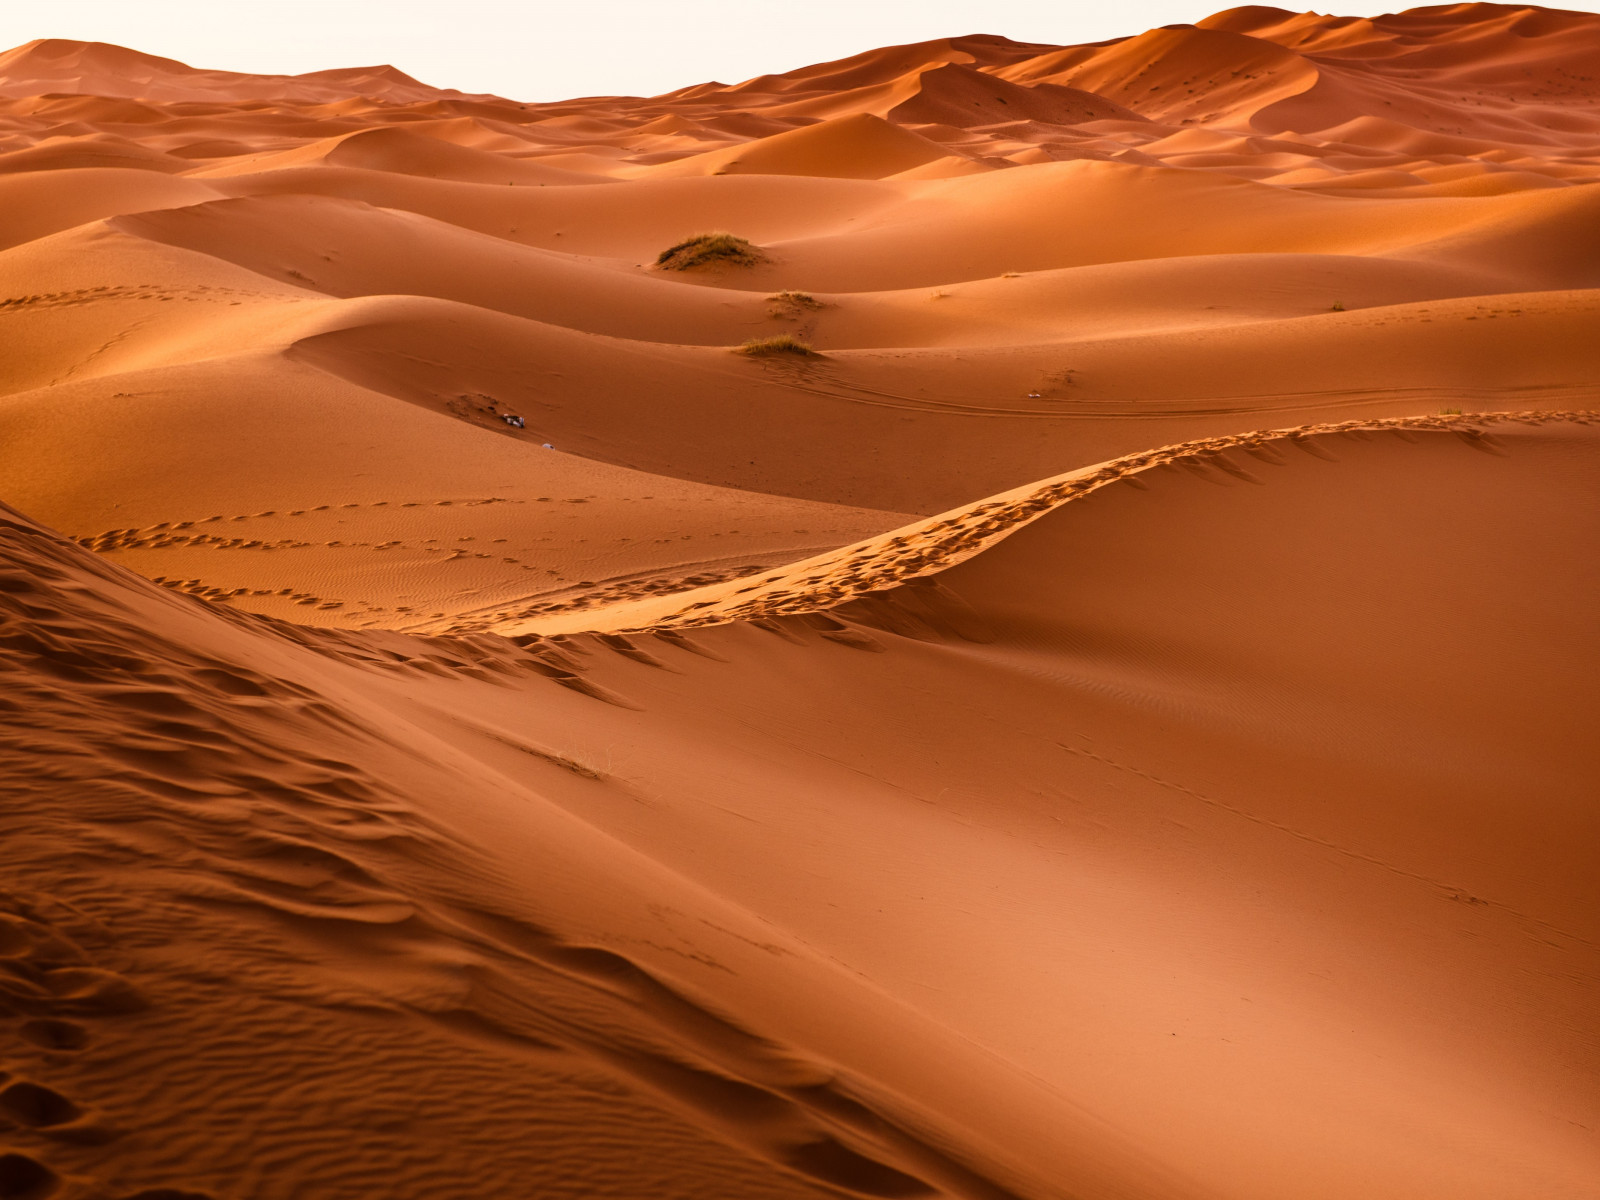 Sahara Desert wallpaper 1600x1200